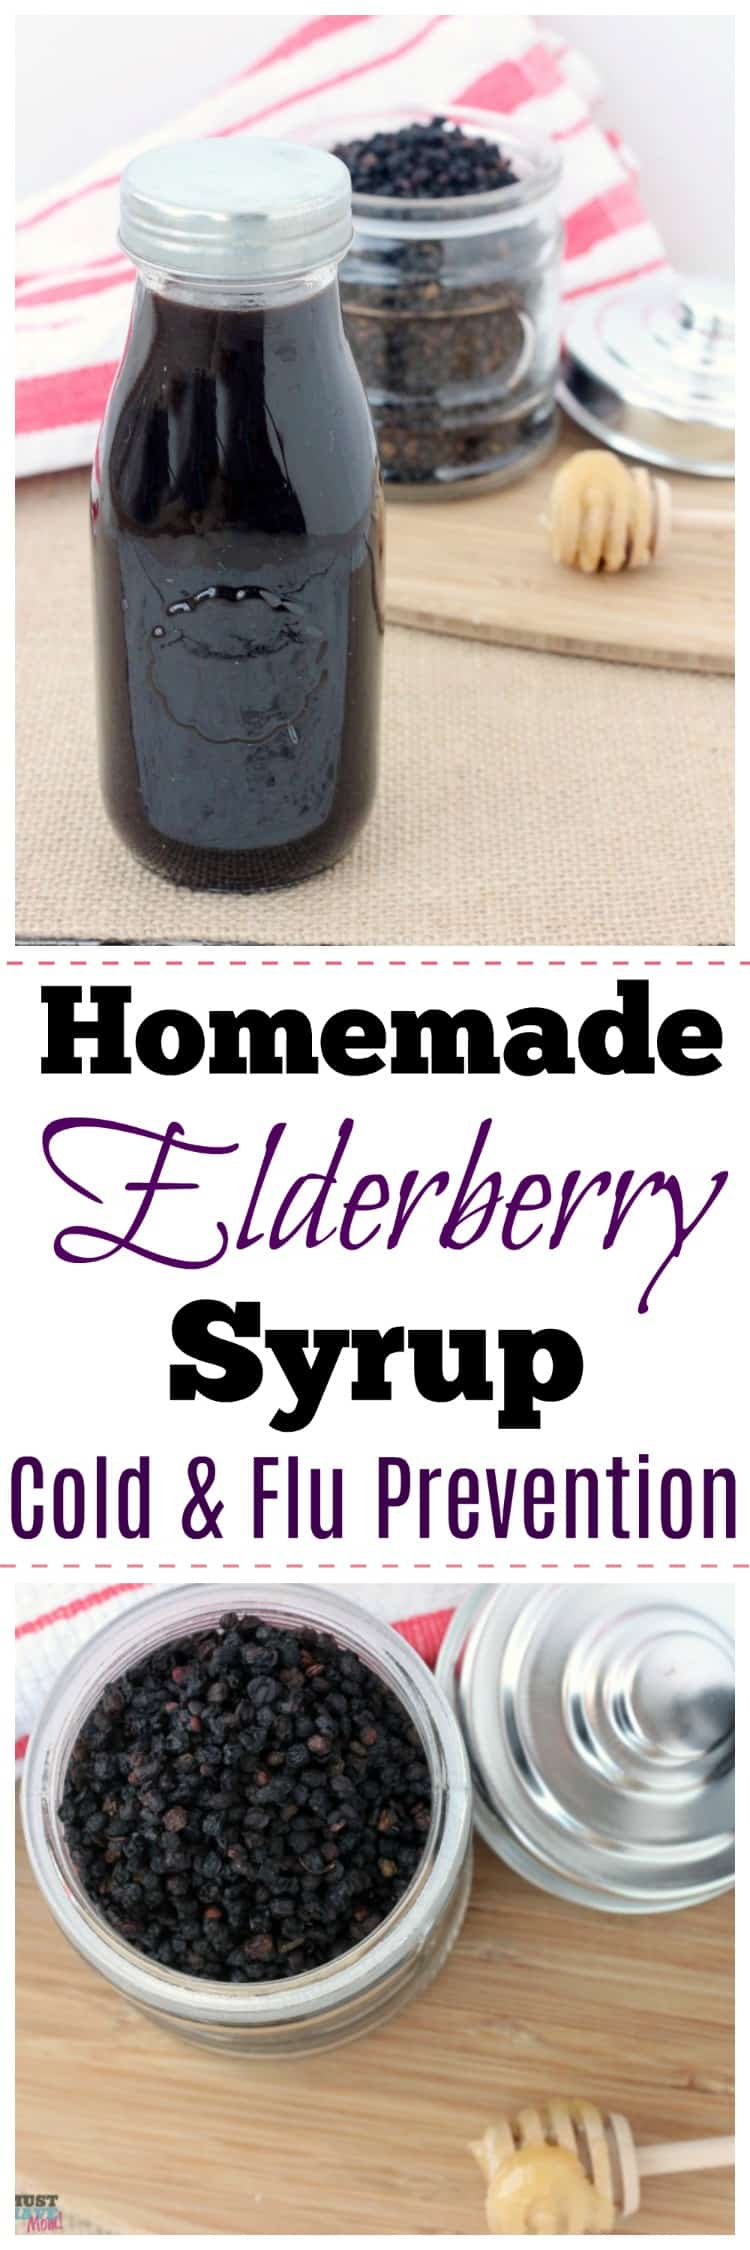 Homemade elderberry syrup for cold and flu prevention using dried elderberries. Great natural remedy.